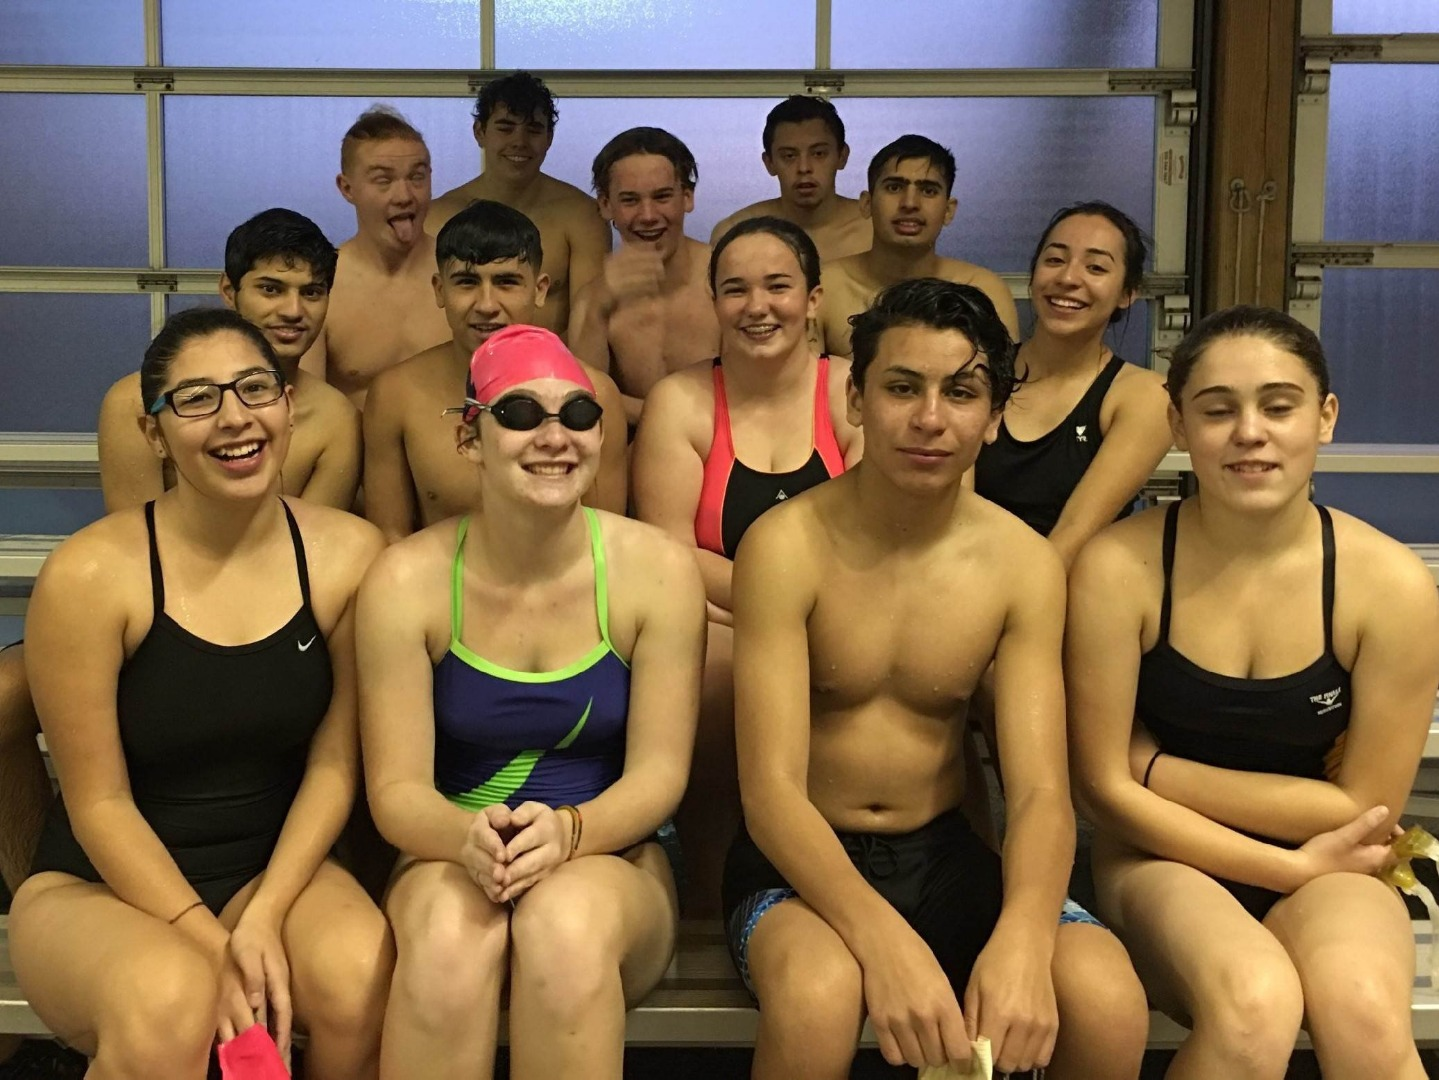 Group photo of the highland swim and dive team